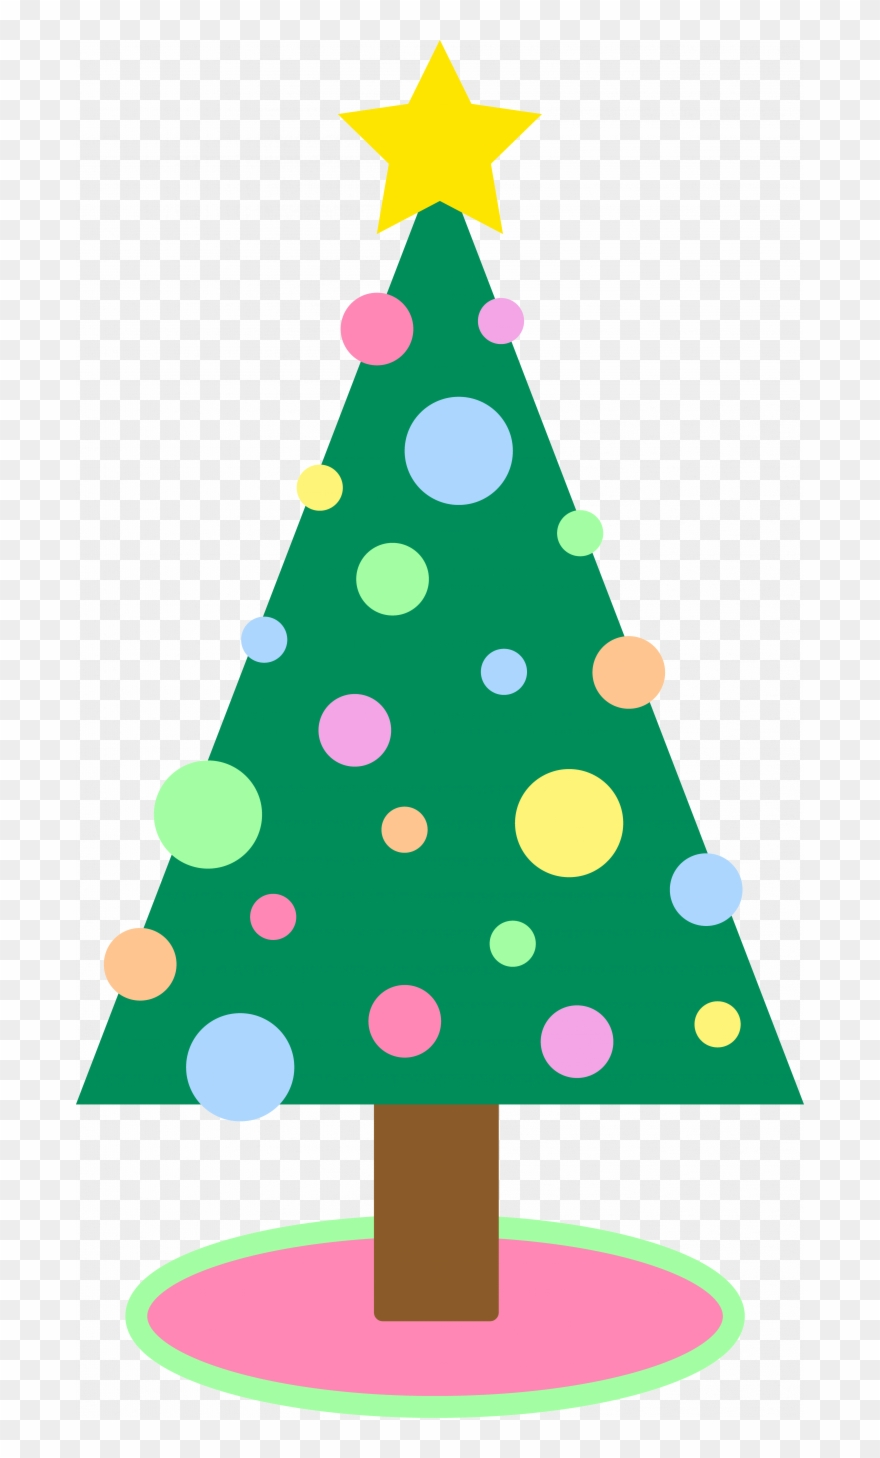 clipartchristmas medium size of christmas tree cute christmas tree cartoon png download 1615838 pinclipart cute christmas tree cartoon